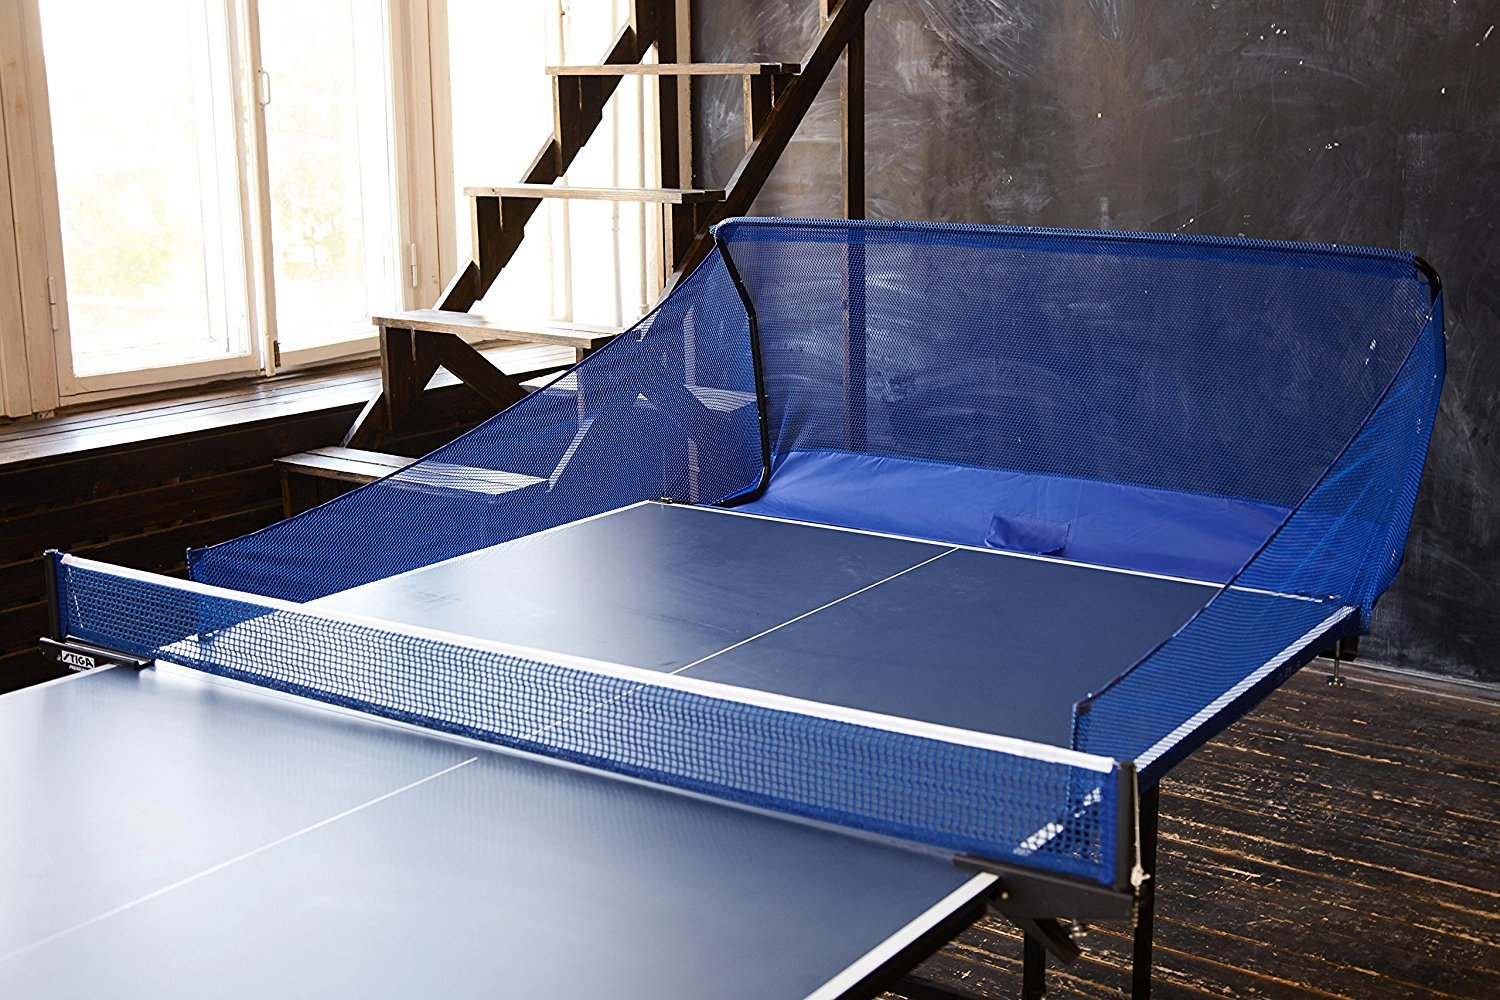 Kenley Powerfly Ping Pong Table Tennis Catcher Net - Portable Ball Catch Netting - Serve and One Player Training Practice Set - Compatible with Robot Trainer Equipment